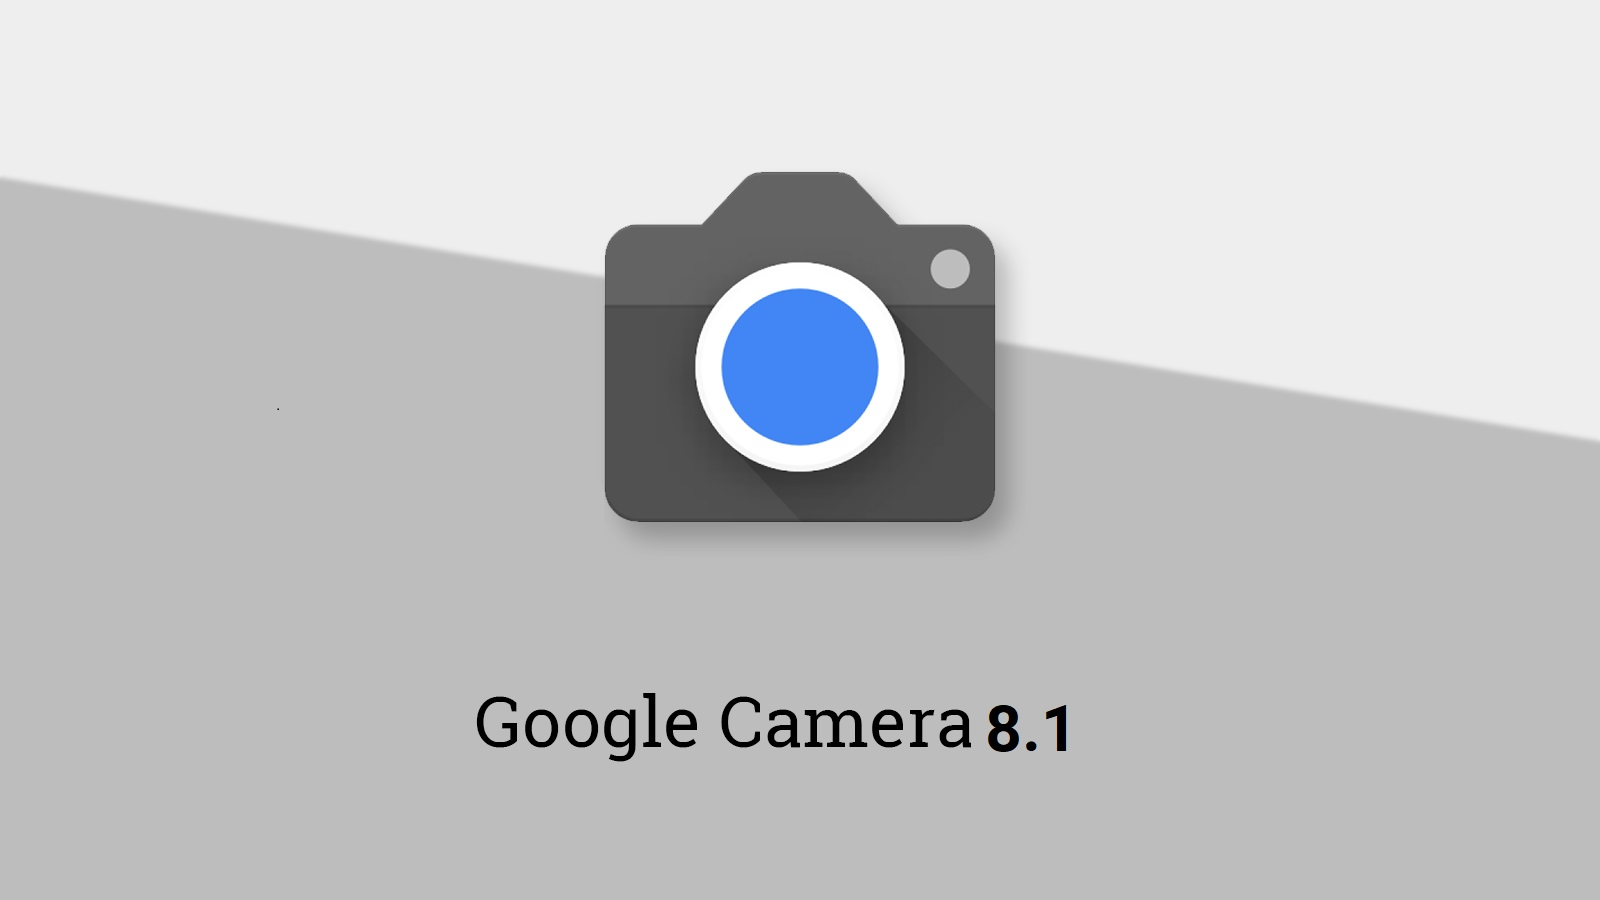 Download Fully Working Gcam 8.1 for Android Phones